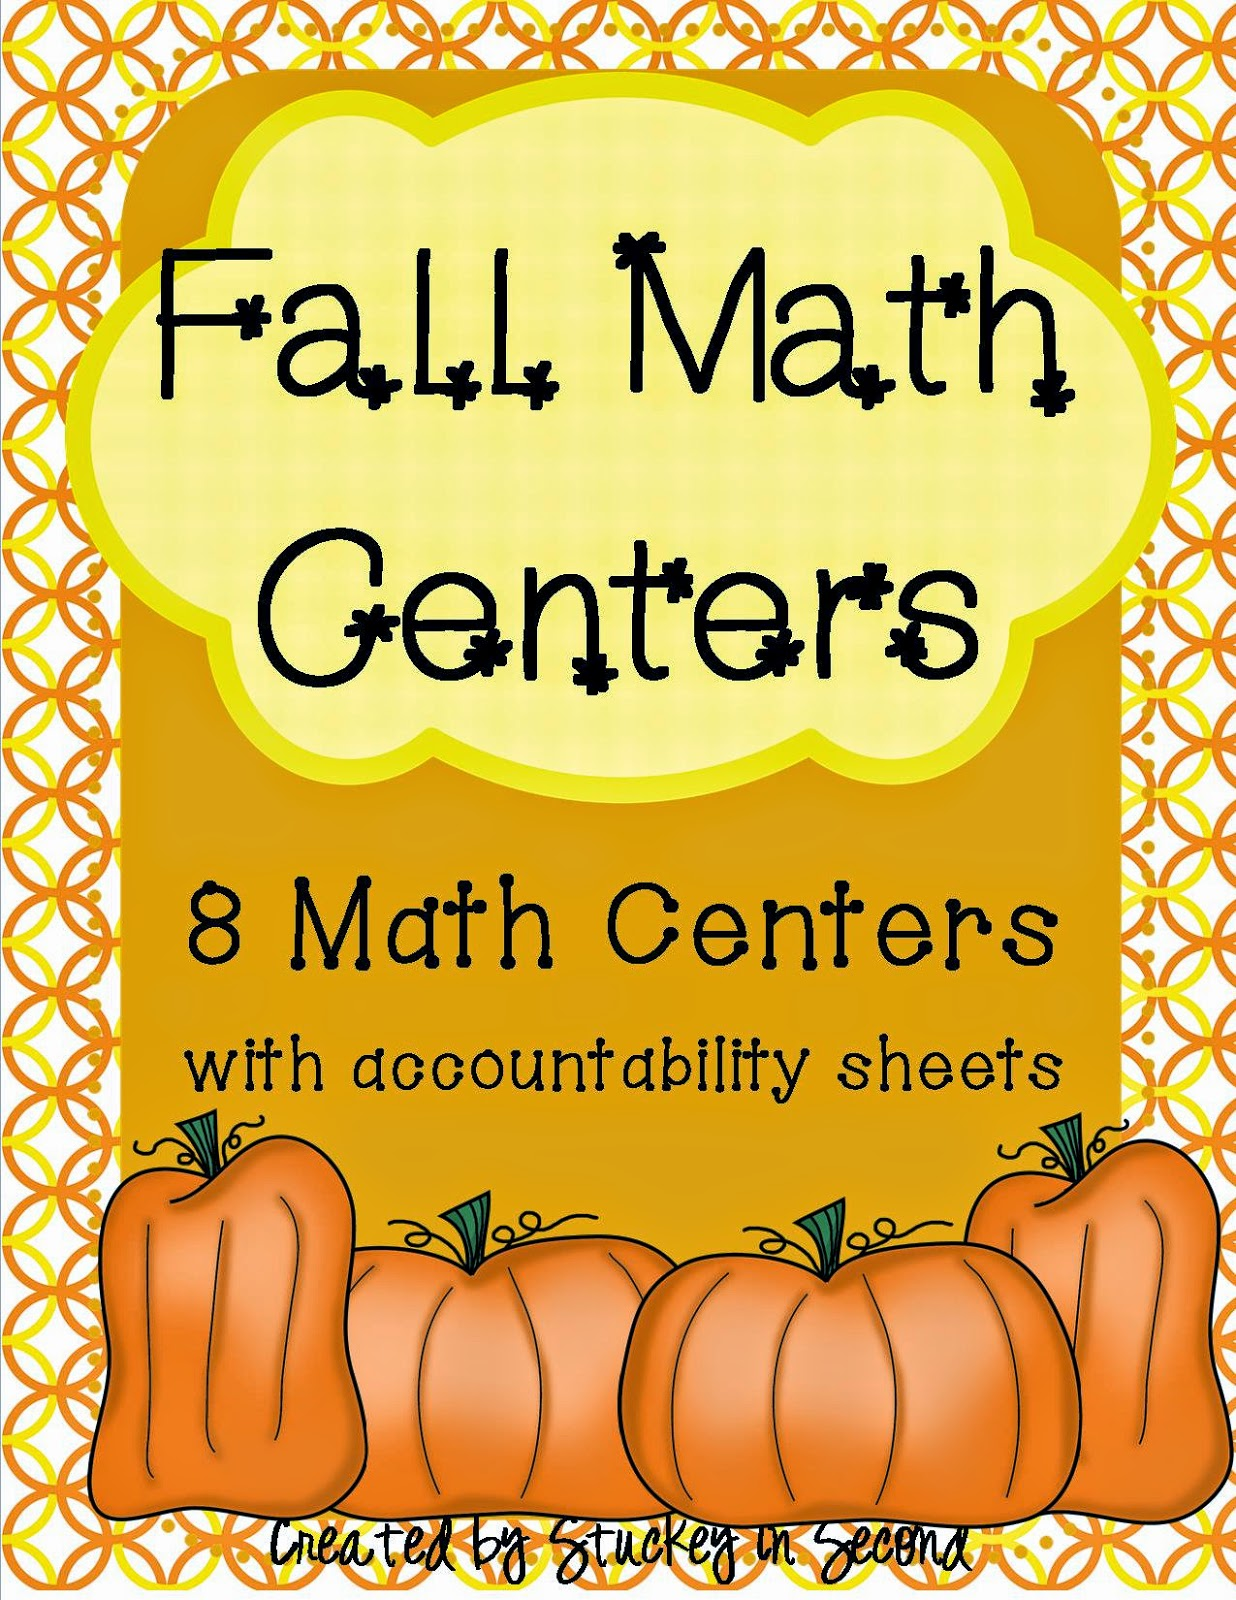 http://www.teacherspayteachers.com/Product/Fall-Math-Centers-mClass-Envision-based-8-Centers-Total-922714